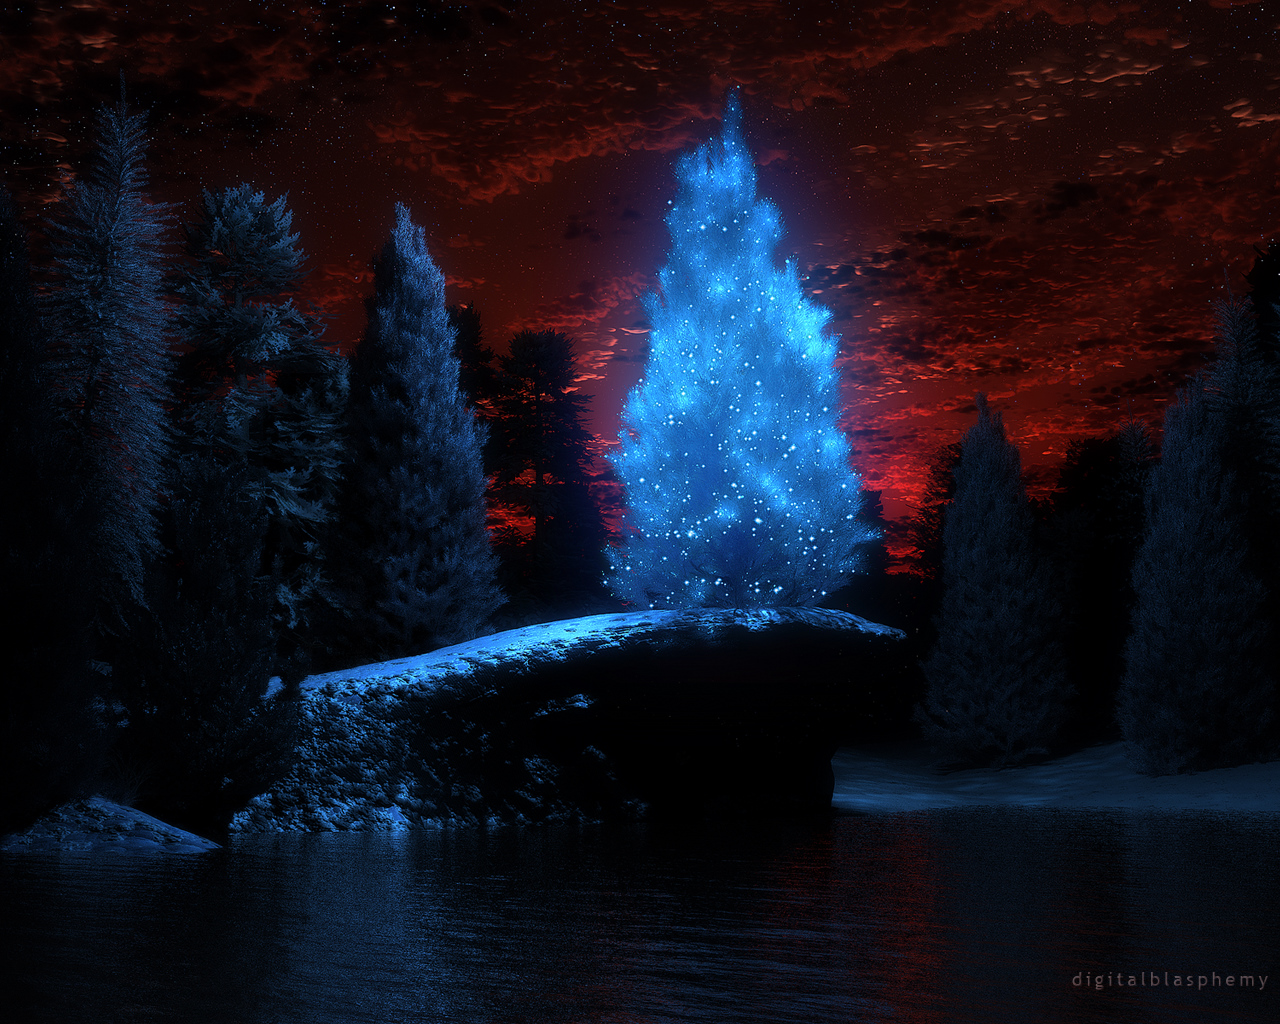 Digital Blasphemy 3D Wallpaper: Blue Christmas (Christmas ...